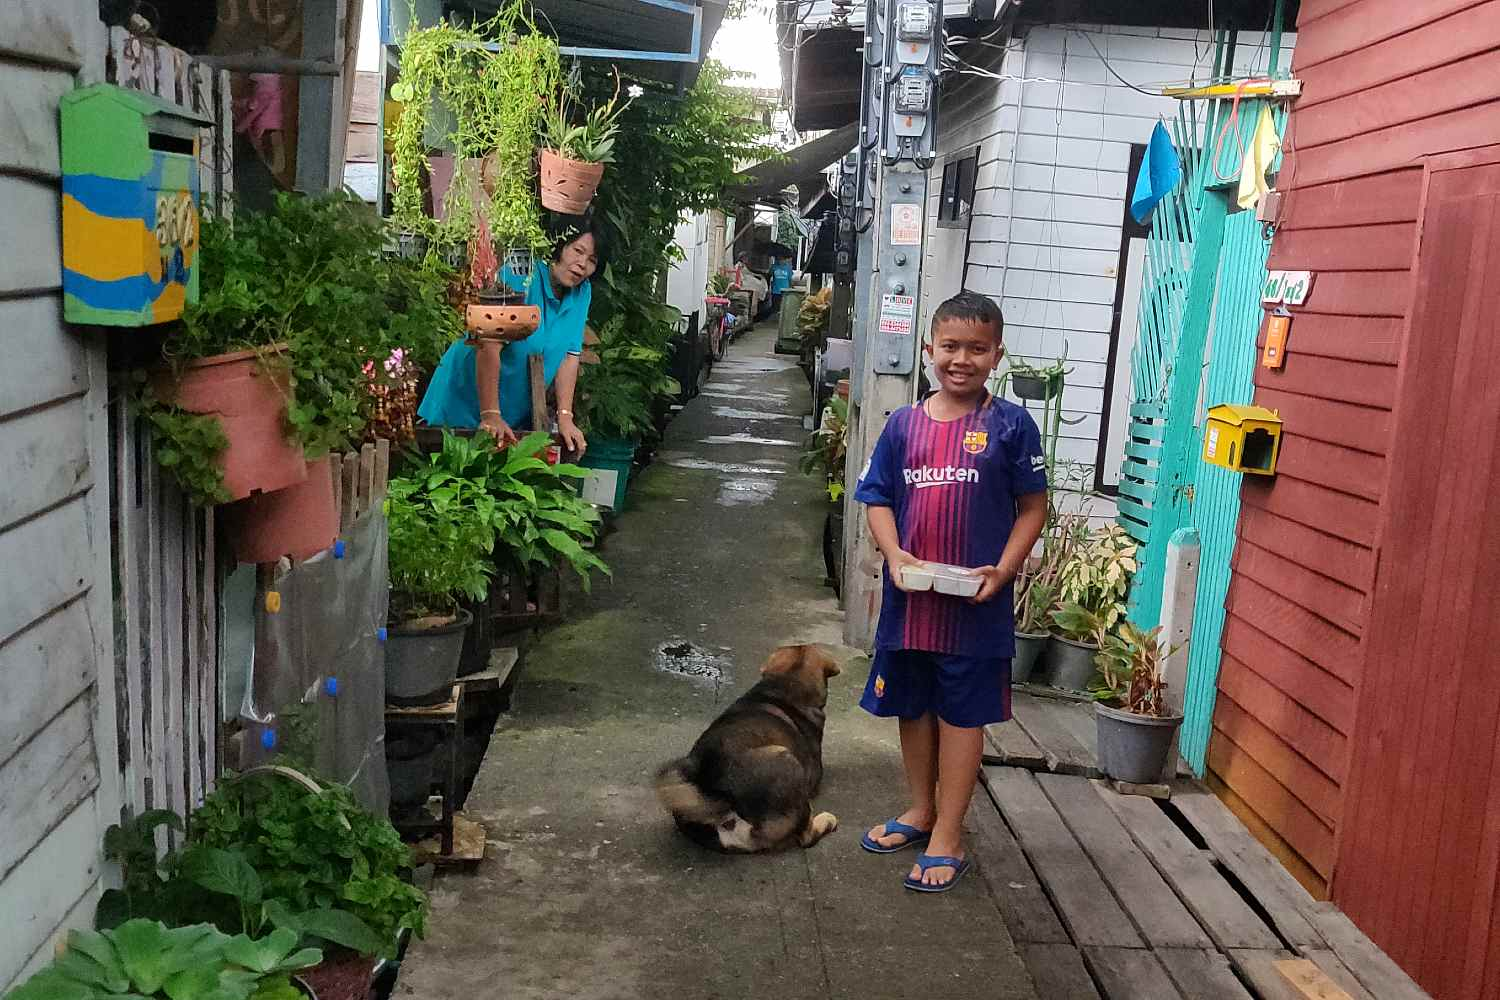 Laughing boy with dog in narrow state between wooden houses on poles